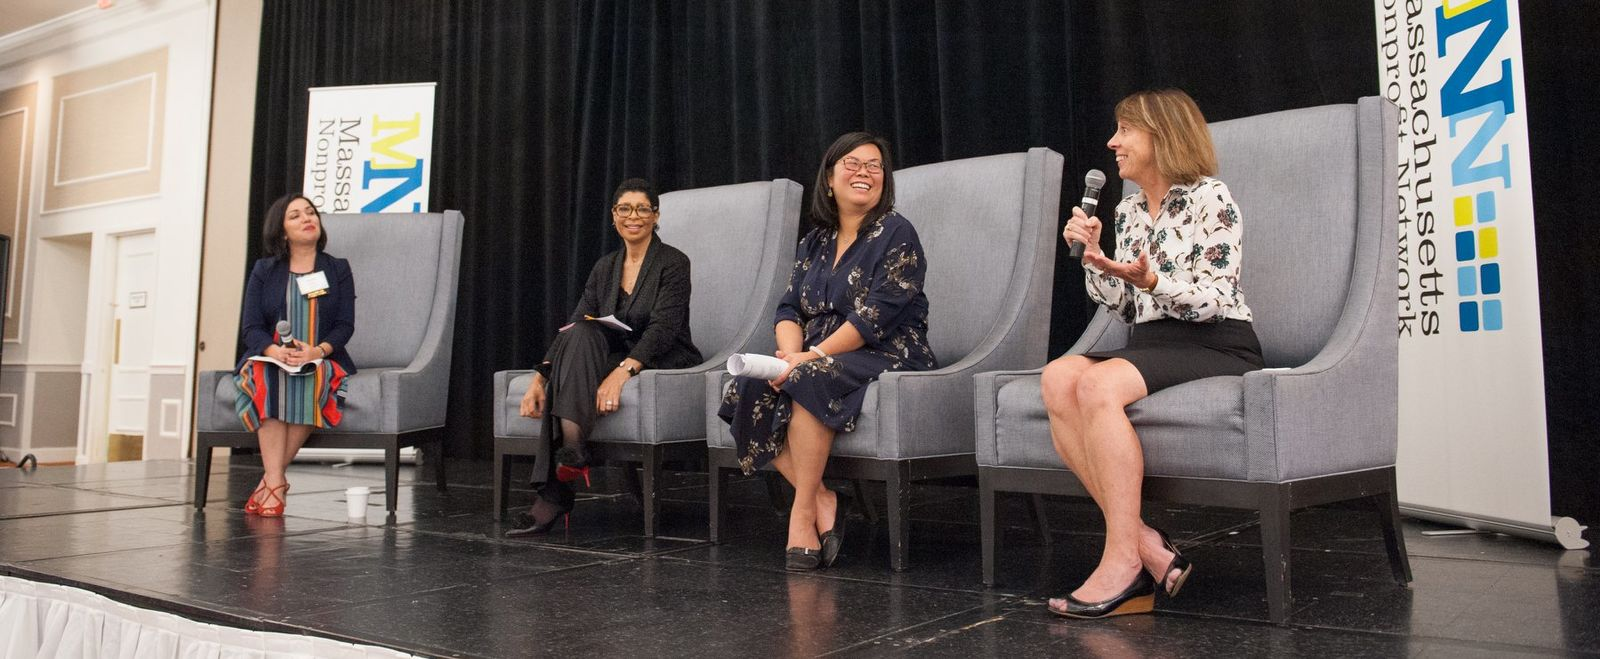 Four women speak on stage at a panel discussion.